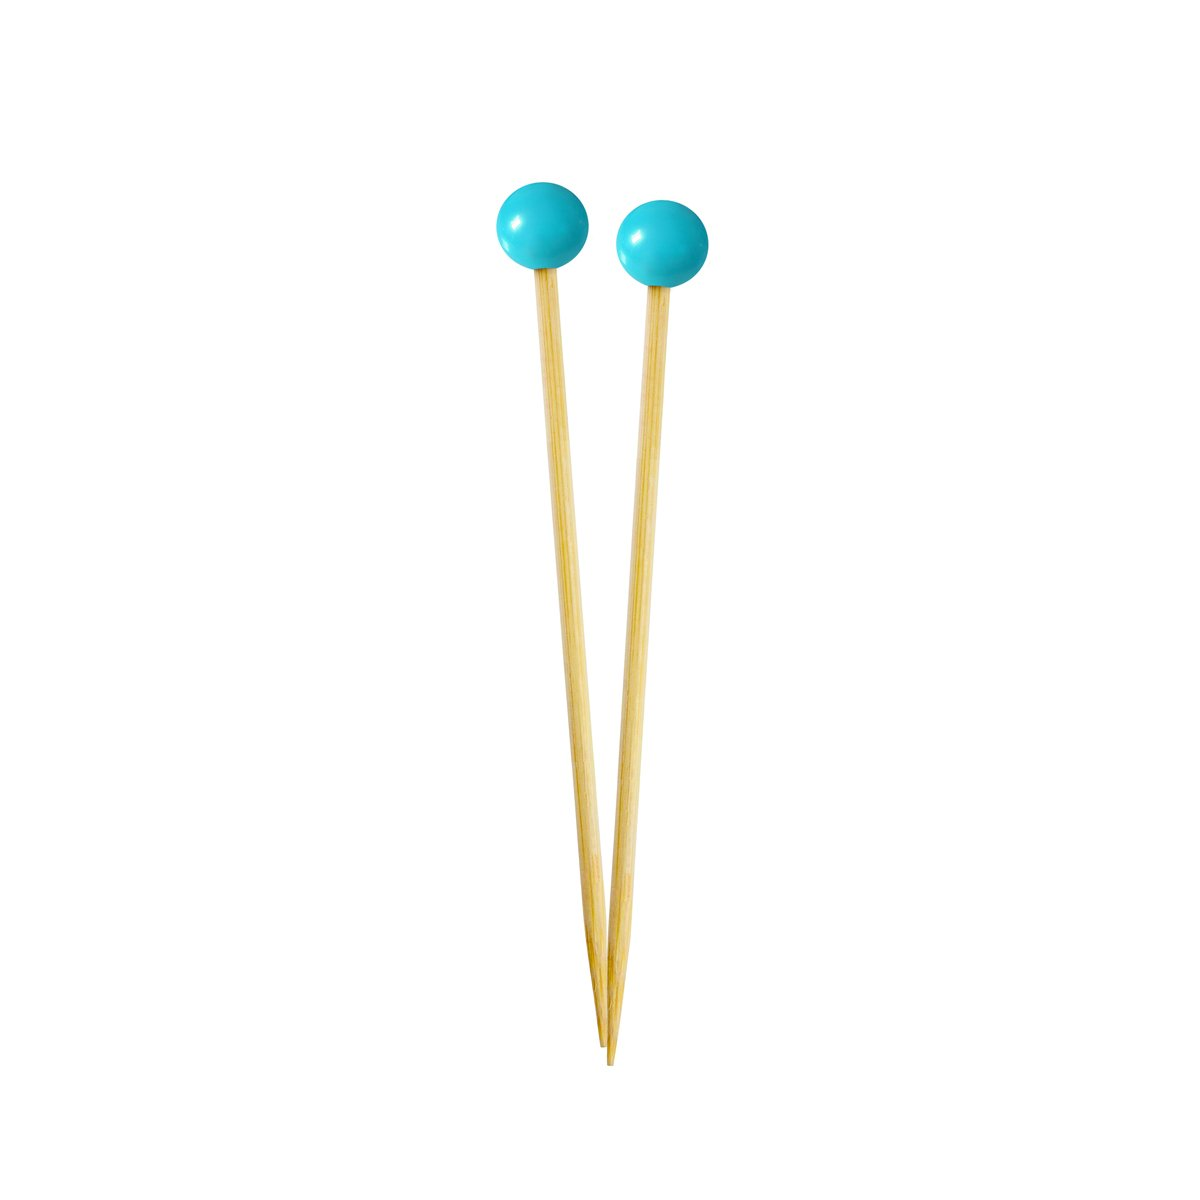 Simply Baked Small Appetizer & Cocktail Pick, Turquoise Ball on Natural Wood Pick, 3.5 Inch, 40-Pack, Disposable and Sturdy